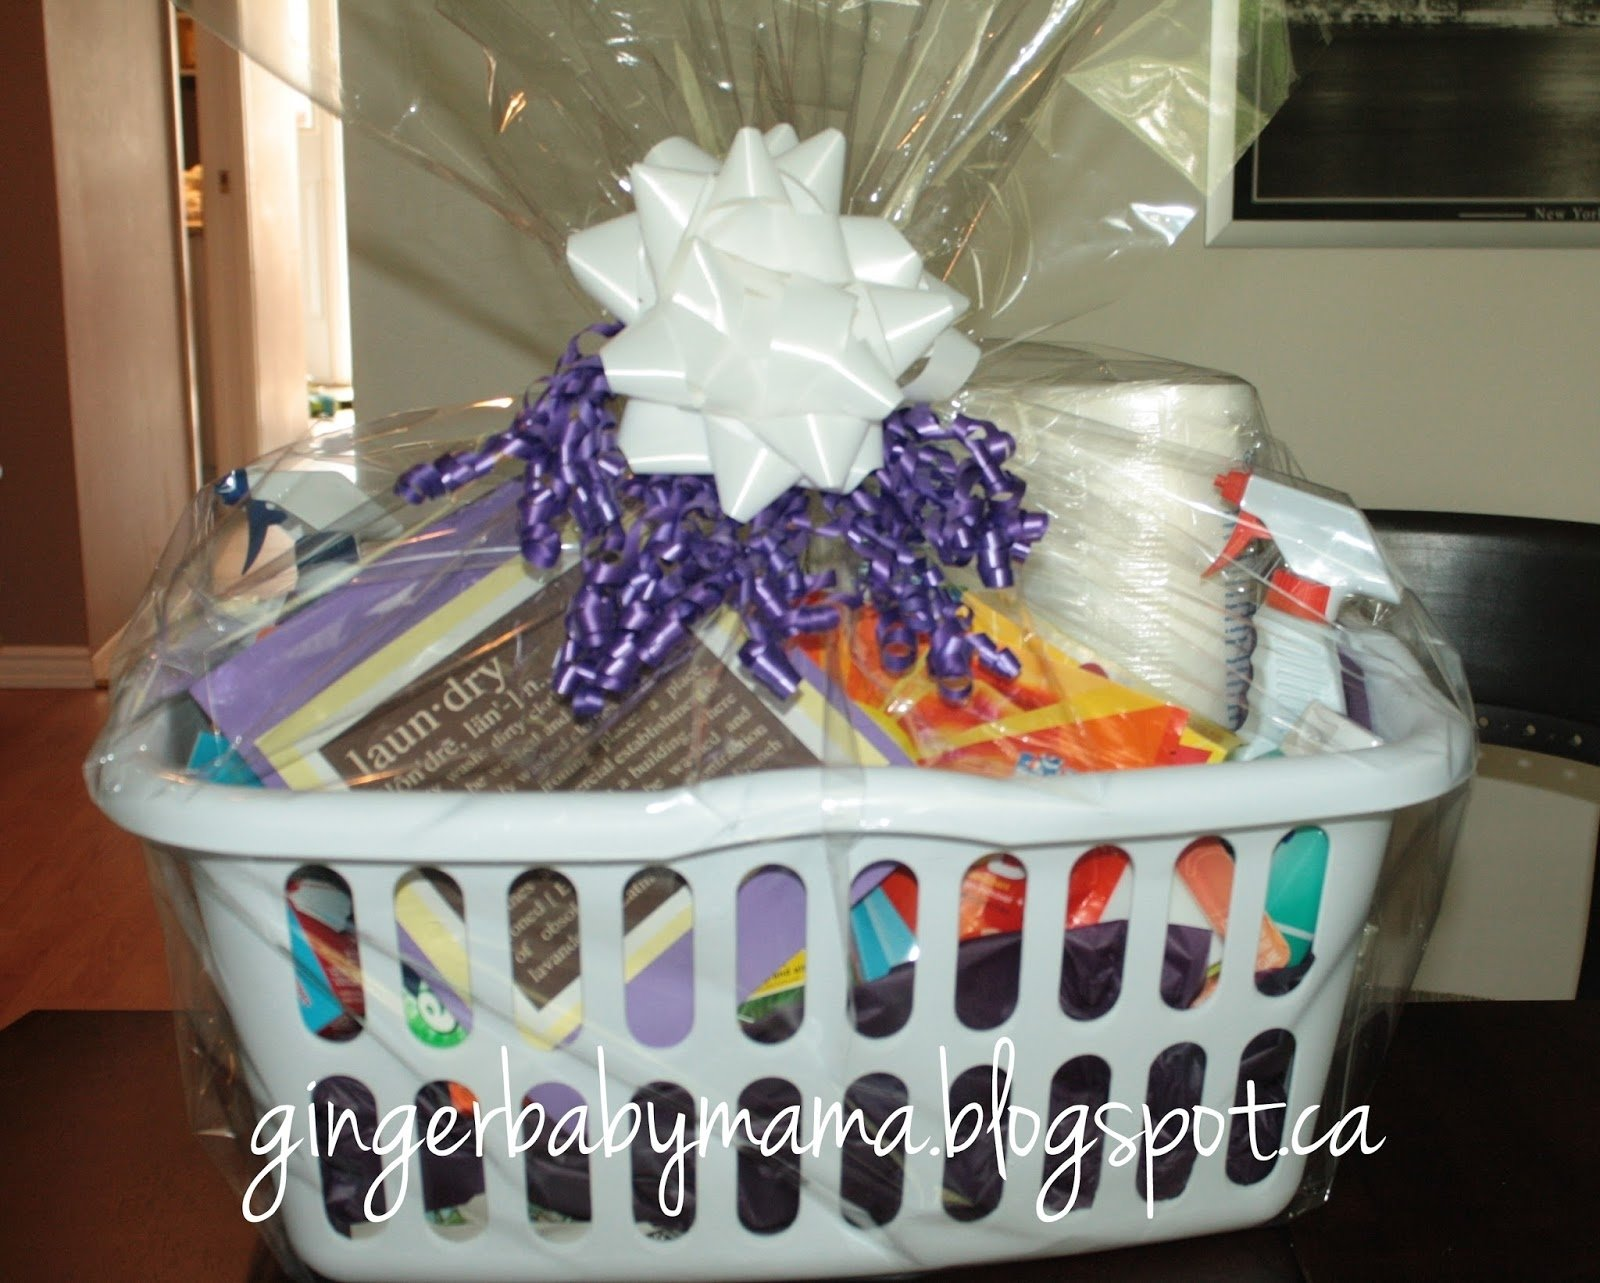 10 Most Recommended Ideas For A Bridal Shower Gift gingerbabymama fun practical bridal shower gift